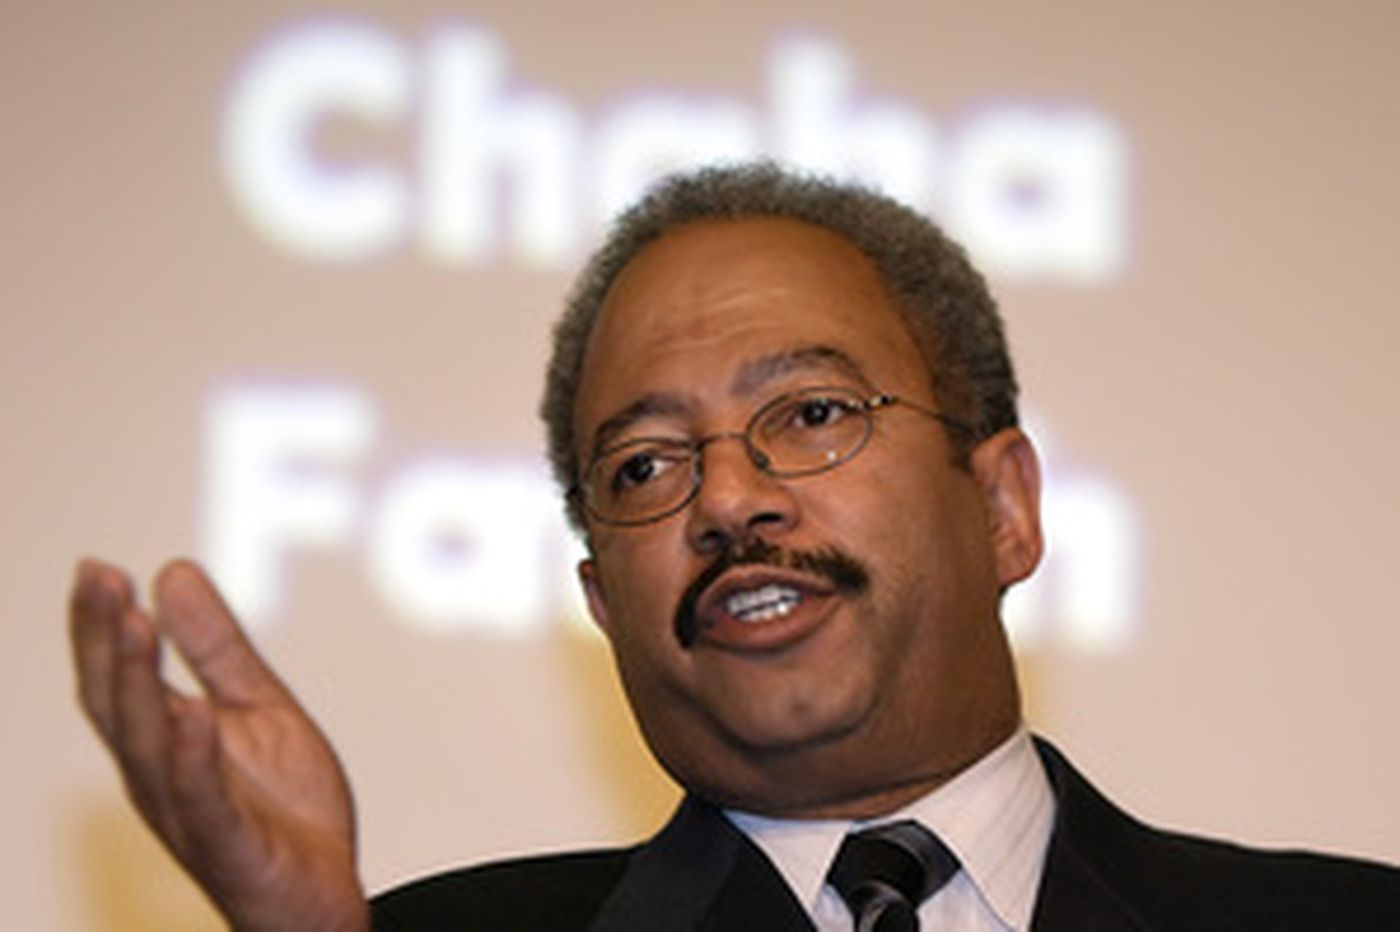 Fattah: Lease airport to fund social services